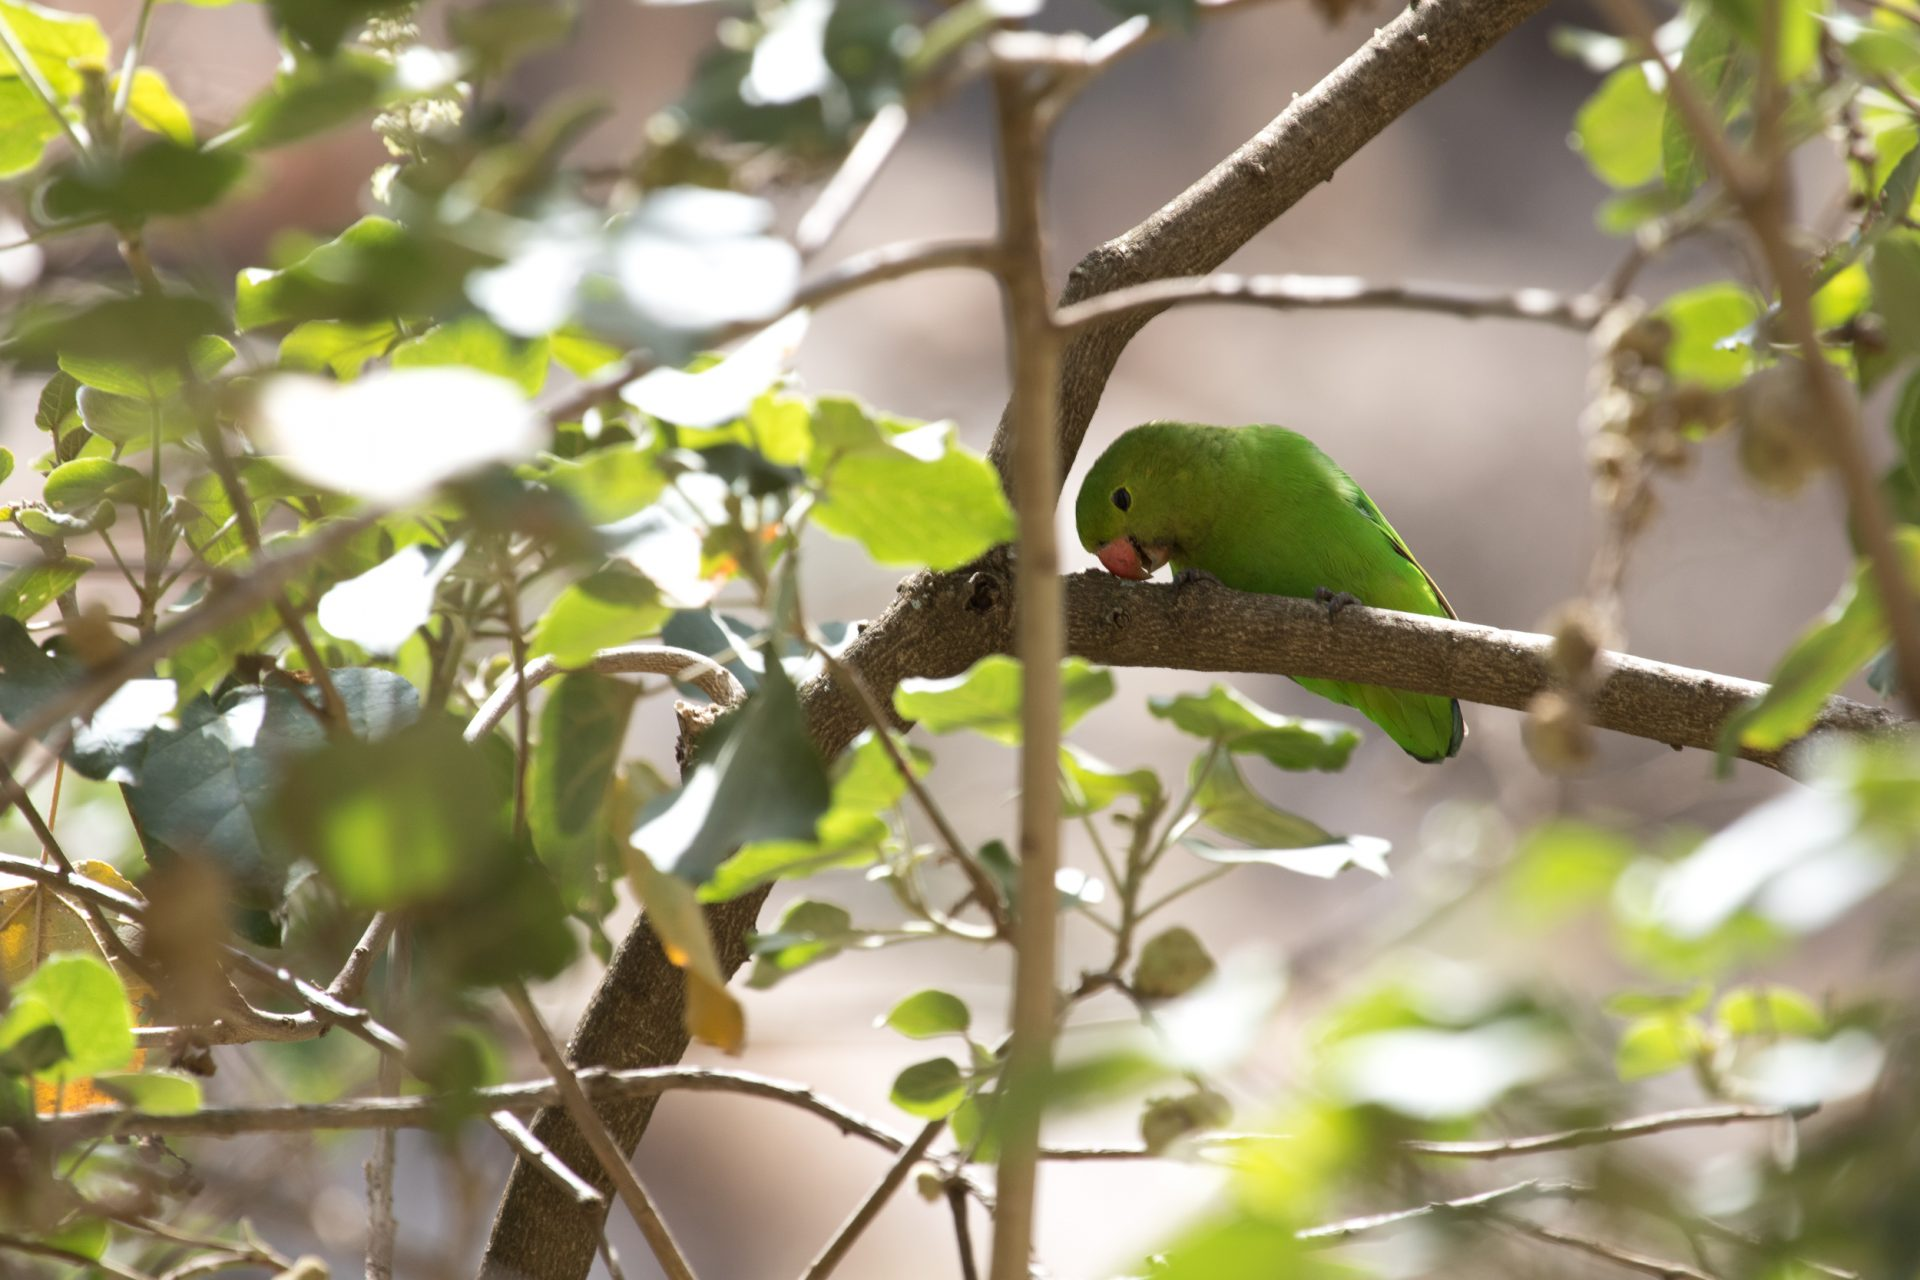 The endemic Black-winged Lovebird is common throughout.